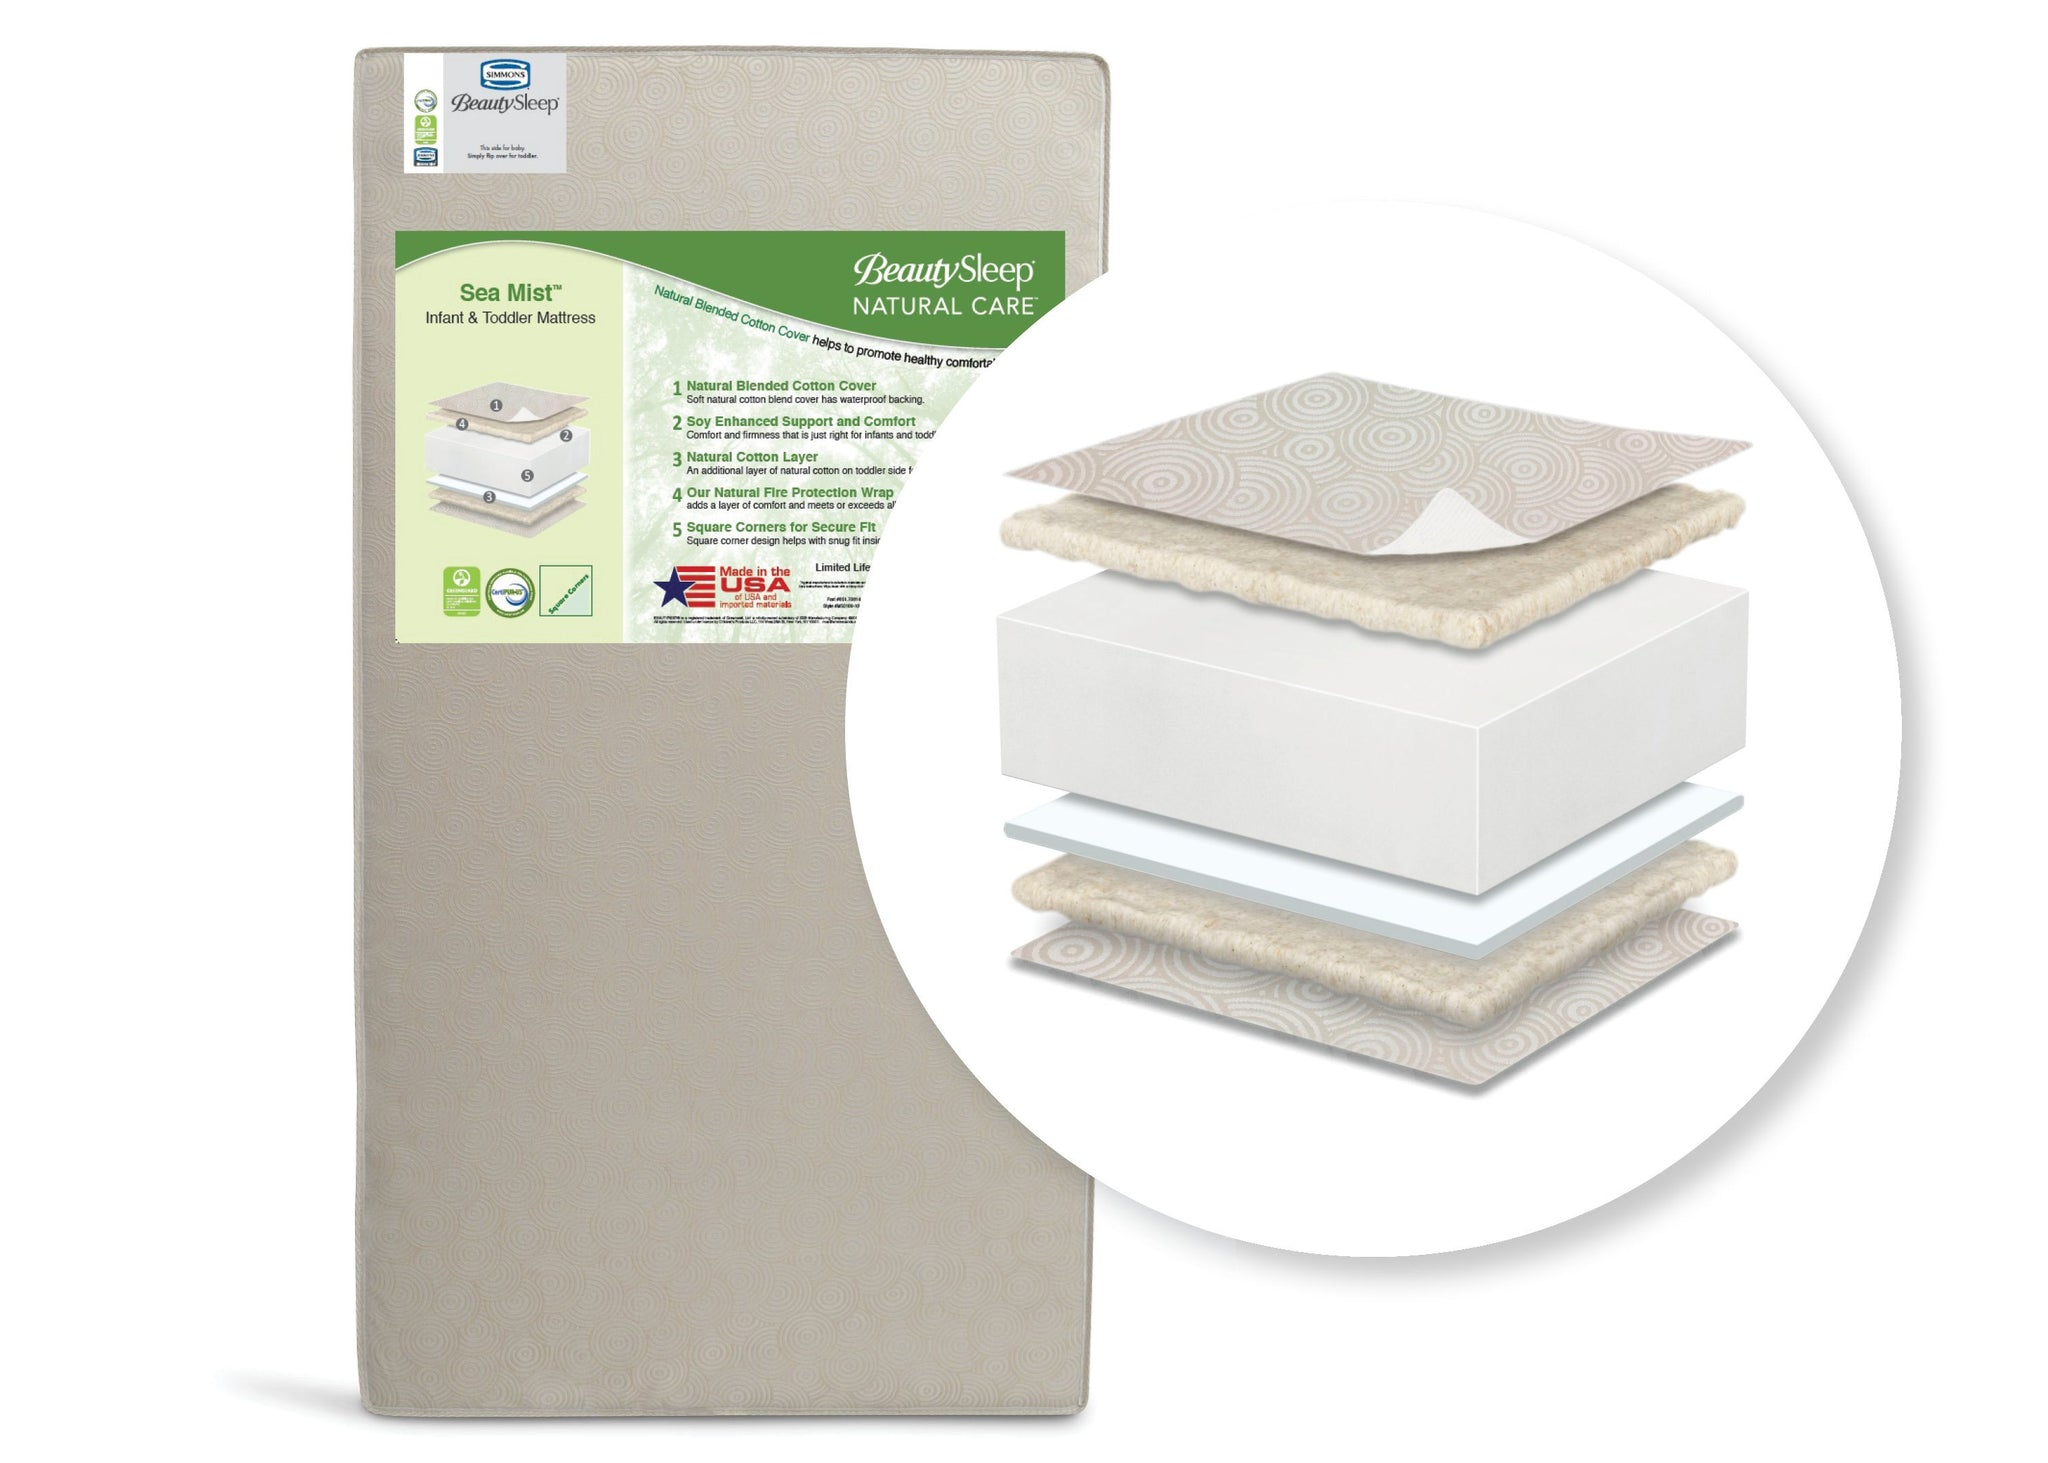 BeautySleep Natural Care Sea Mist Crib and Toddler Mattress by Beautyrest, Main View